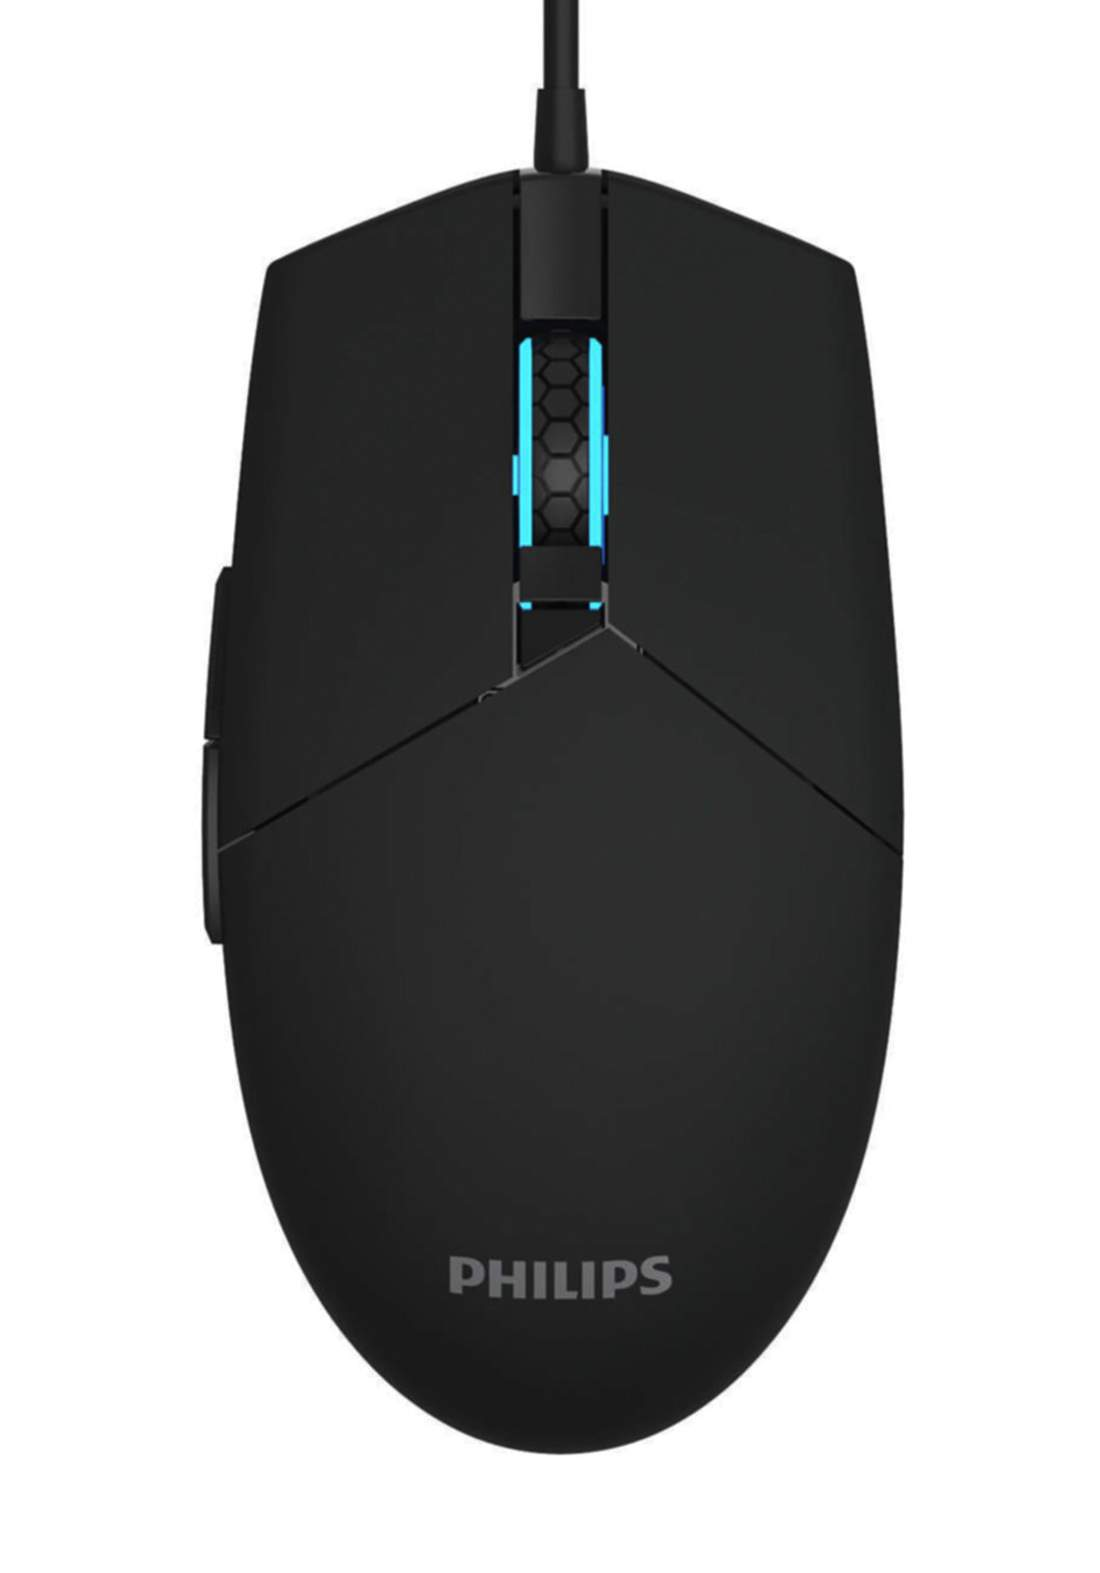 Philips G304 Wired  Gaming Mouse - Black ماوس